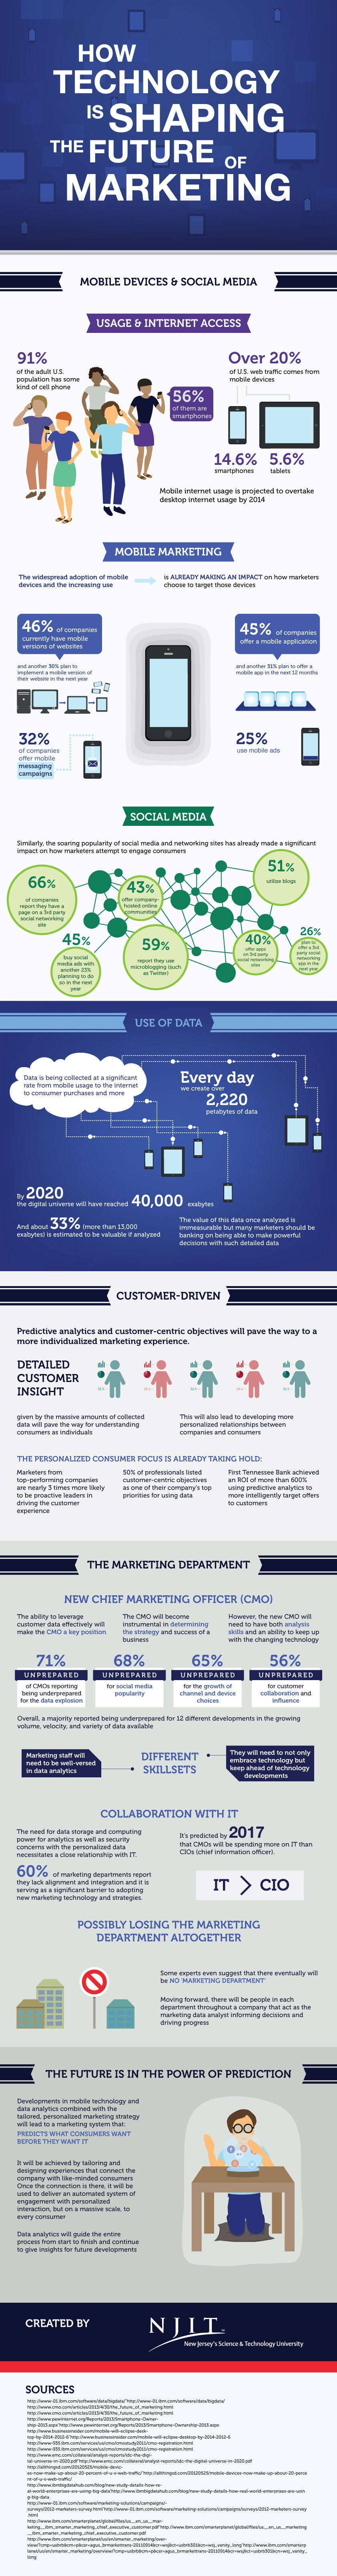 To Win at Marketing, Scrap Your Marketing Department and Hire a Data Geek (Infographic)